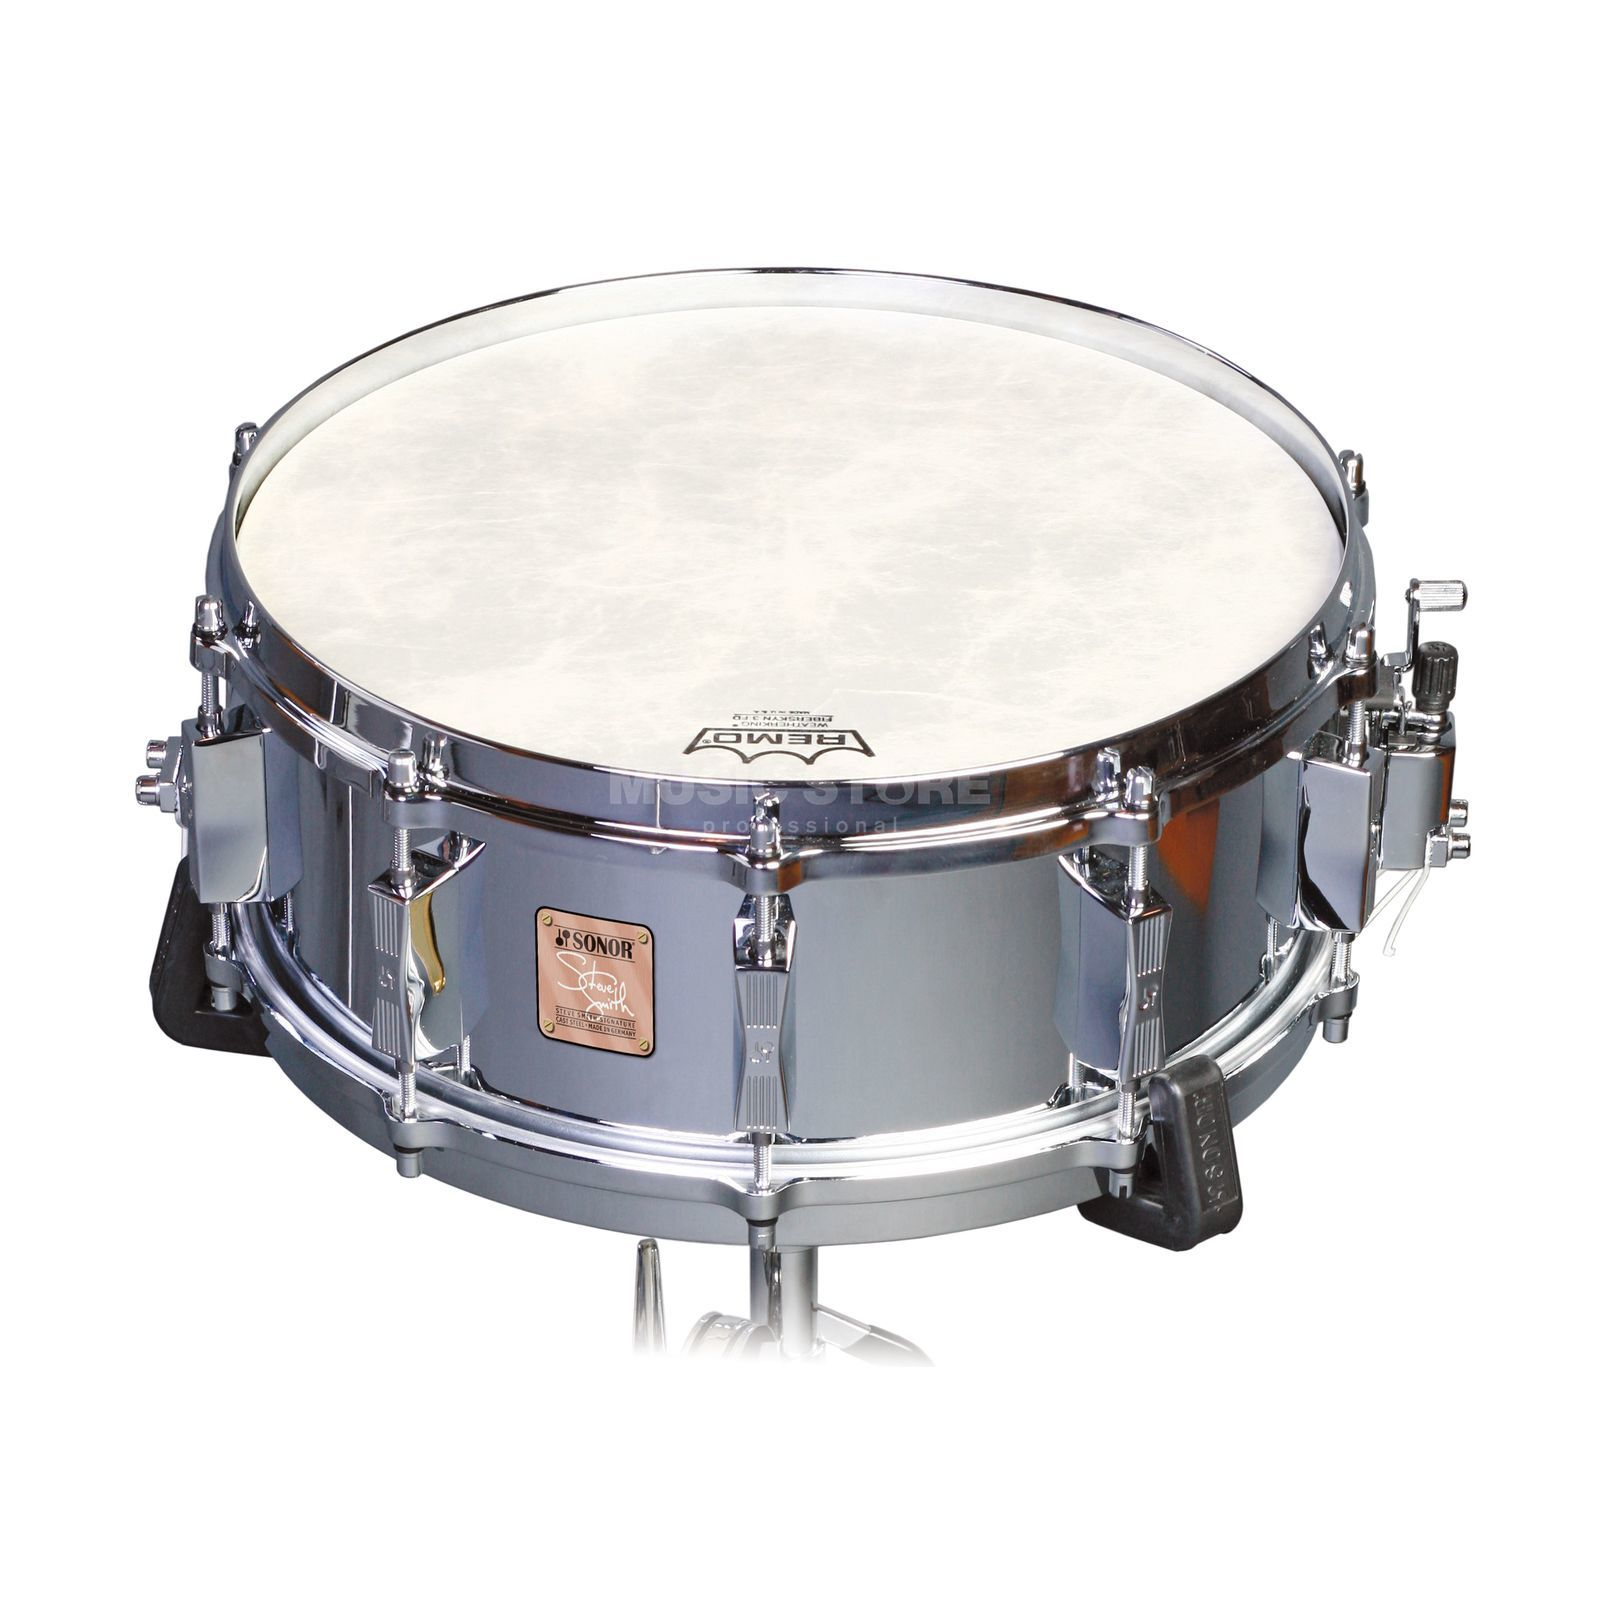 "Sonor Steve Smith Snare 14""x5,5"", Steel Produktbild"